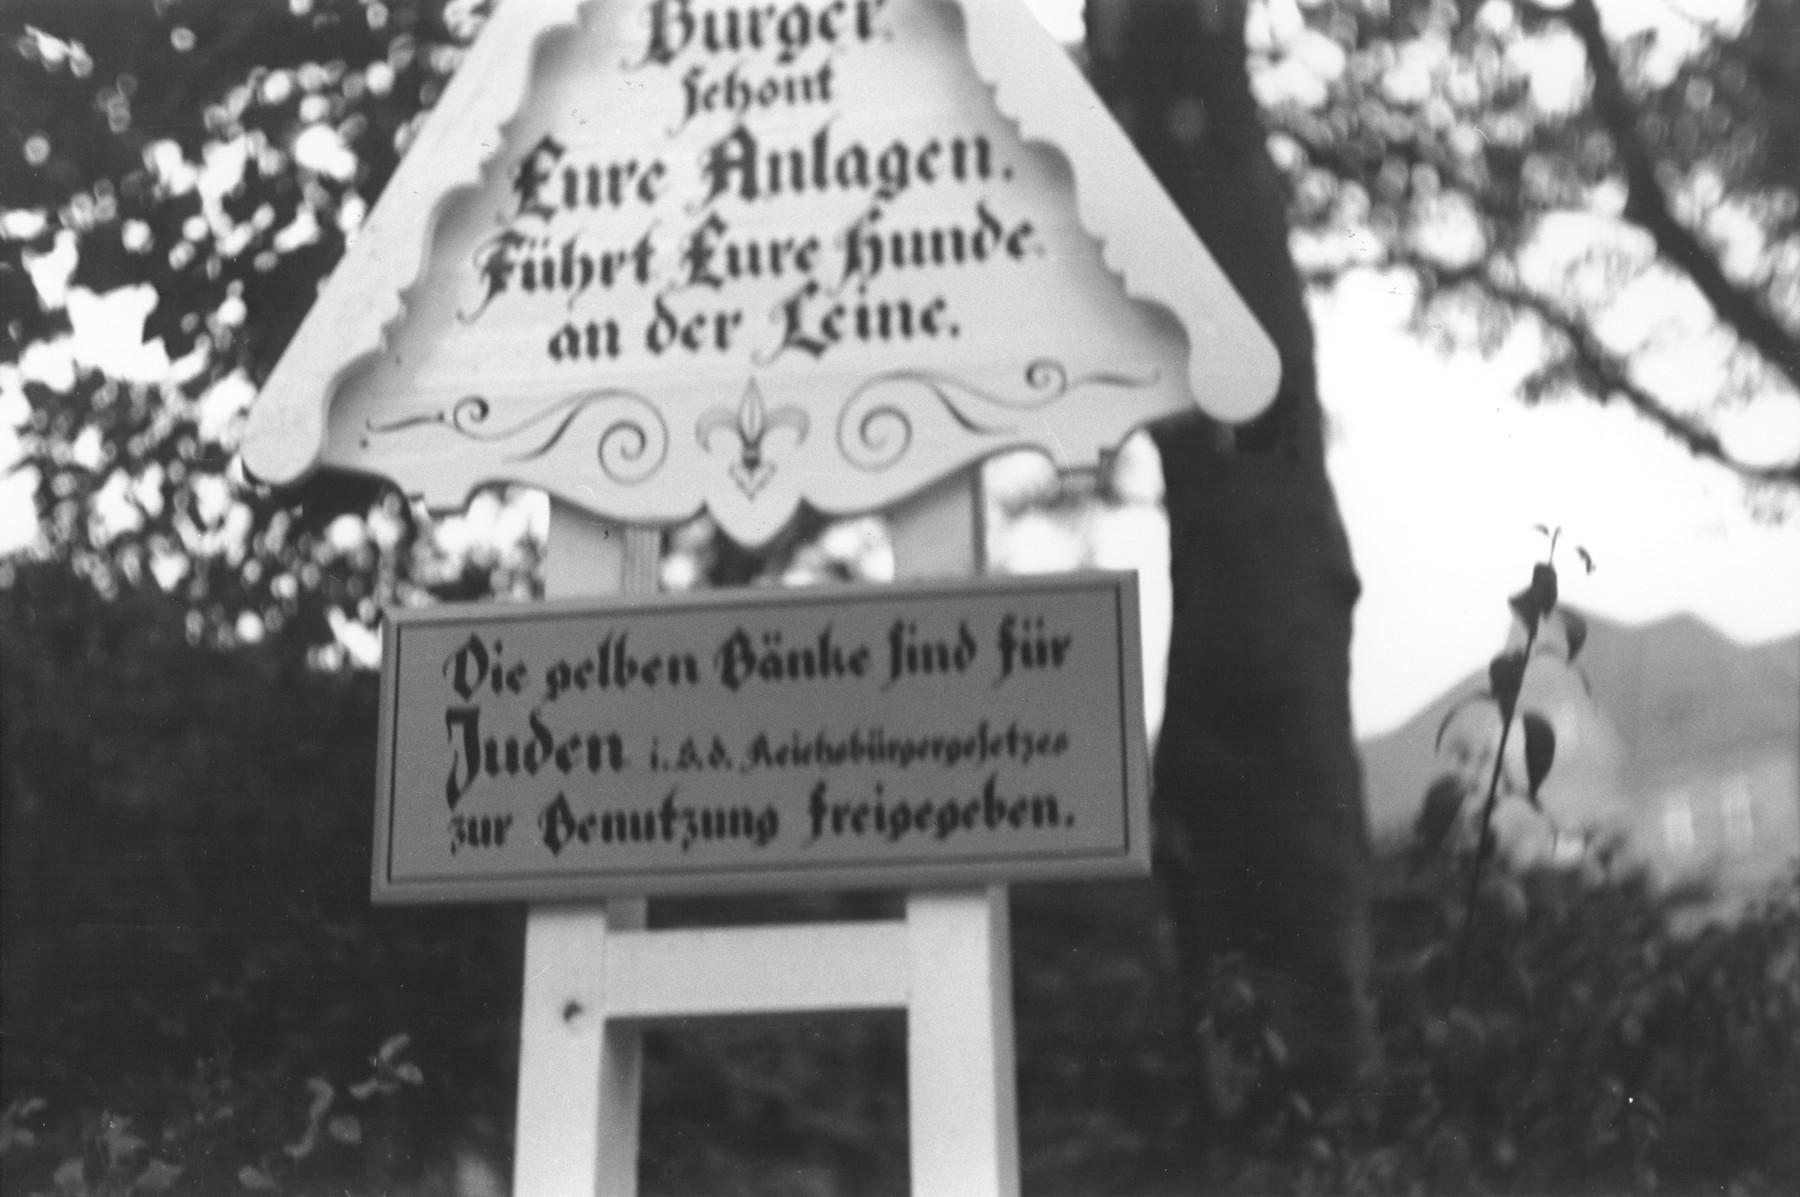 """A decorative sign in a public park in the Oliviaplatz reads: """"Citizens protect your public spaces.  Keep your dogs on a leash.  The yellow benches are for Jews (in accordance with the Reich's law) for their free use."""""""